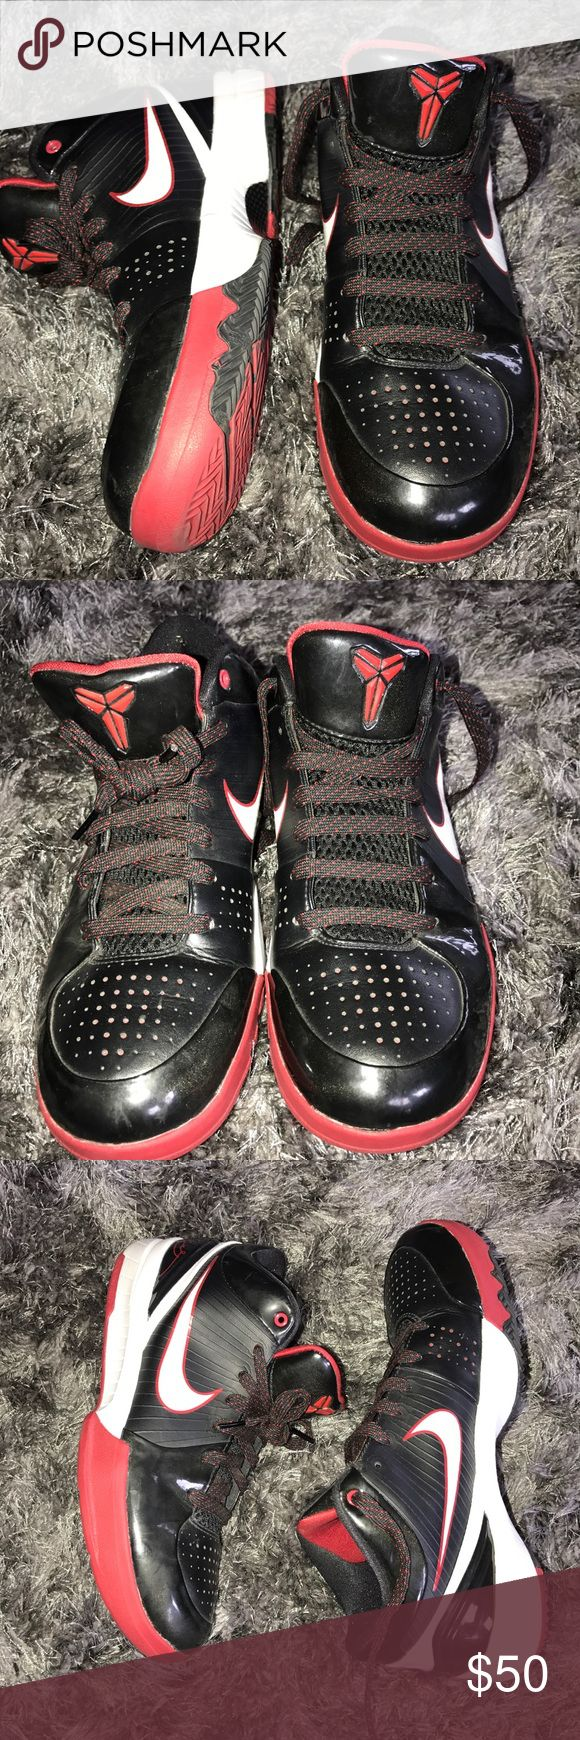 Kobe Bryant shoes Basketball shoes. Super comfy, like new. Only worn a few  times indoors only. Nike Shoes Sneakers